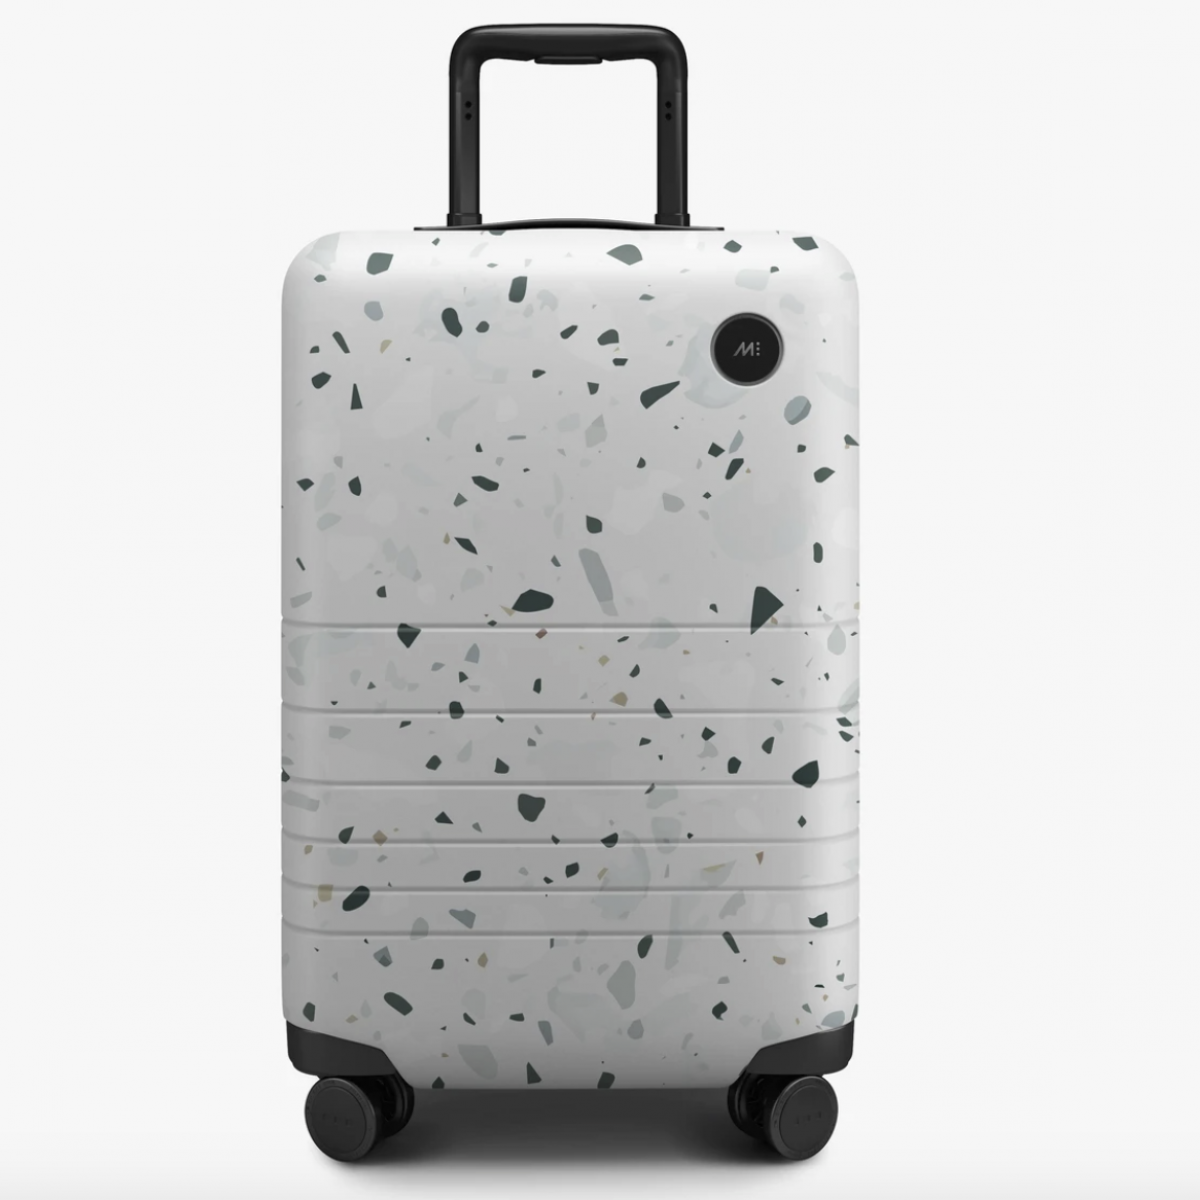 Best Luggage Brands For Every Style And Budget